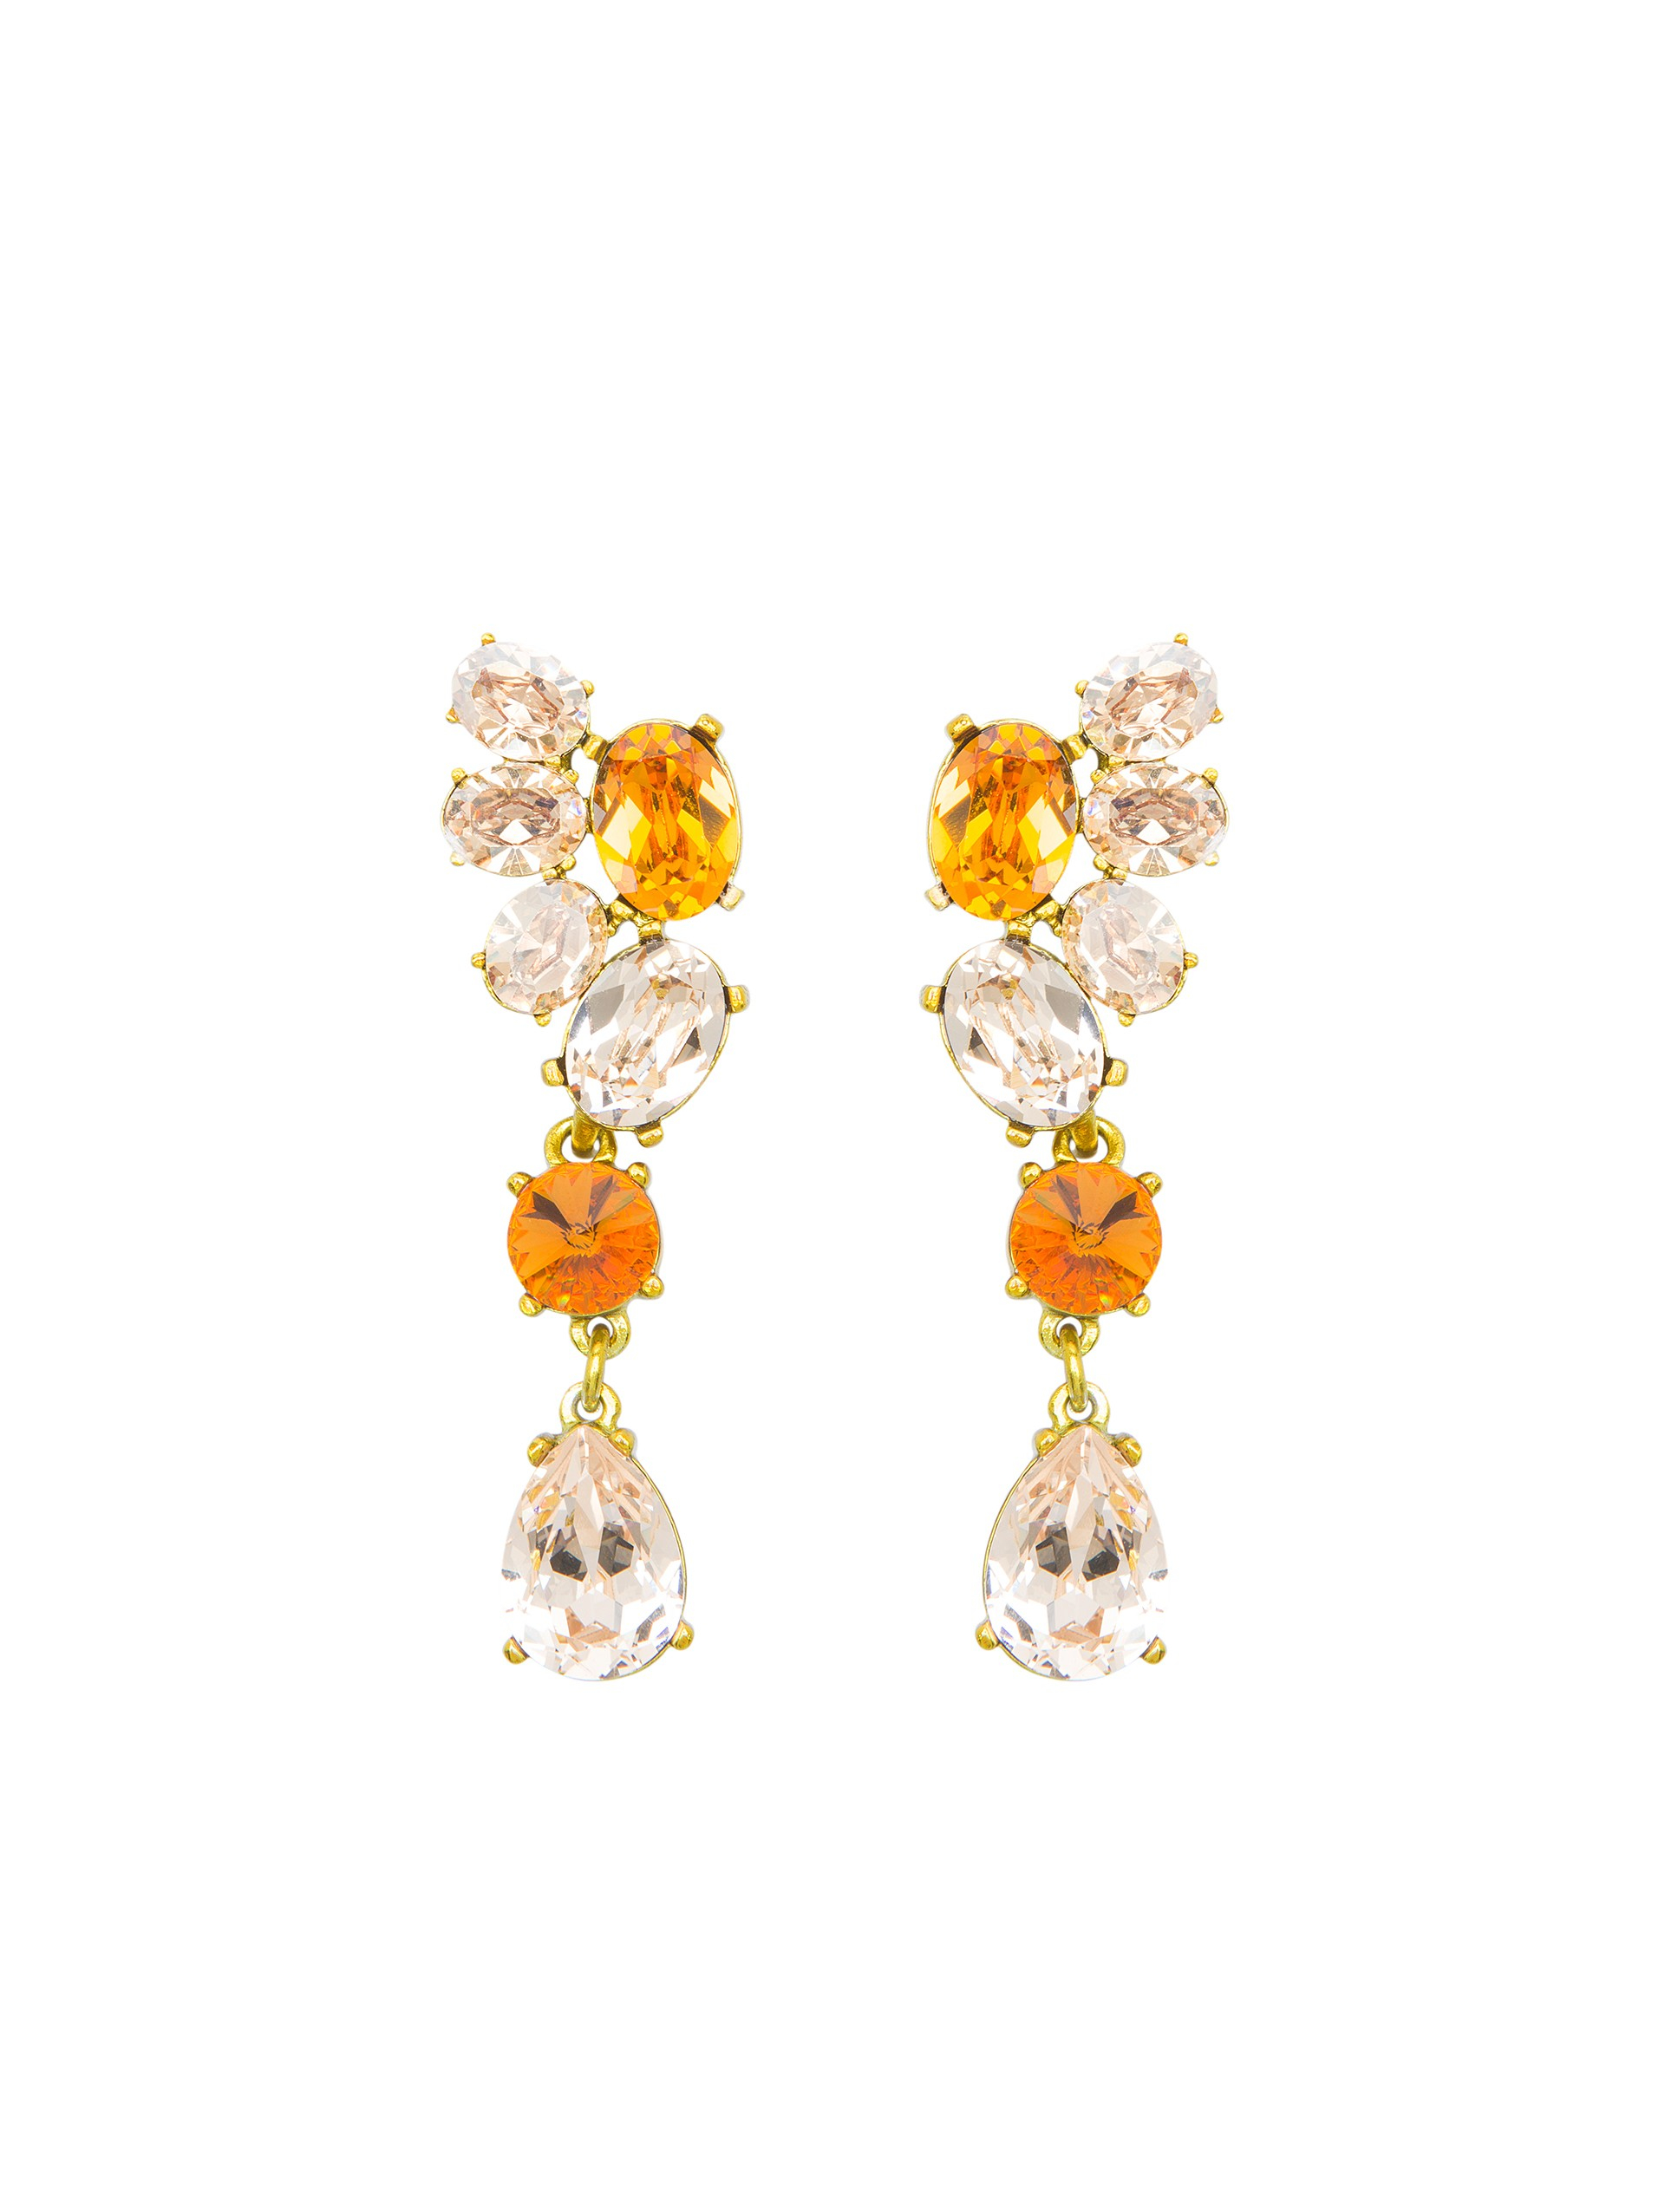 861bc84c7c4b Lyst - Oscar de la Renta Swarovski Crystal Asymmetrical Earrings